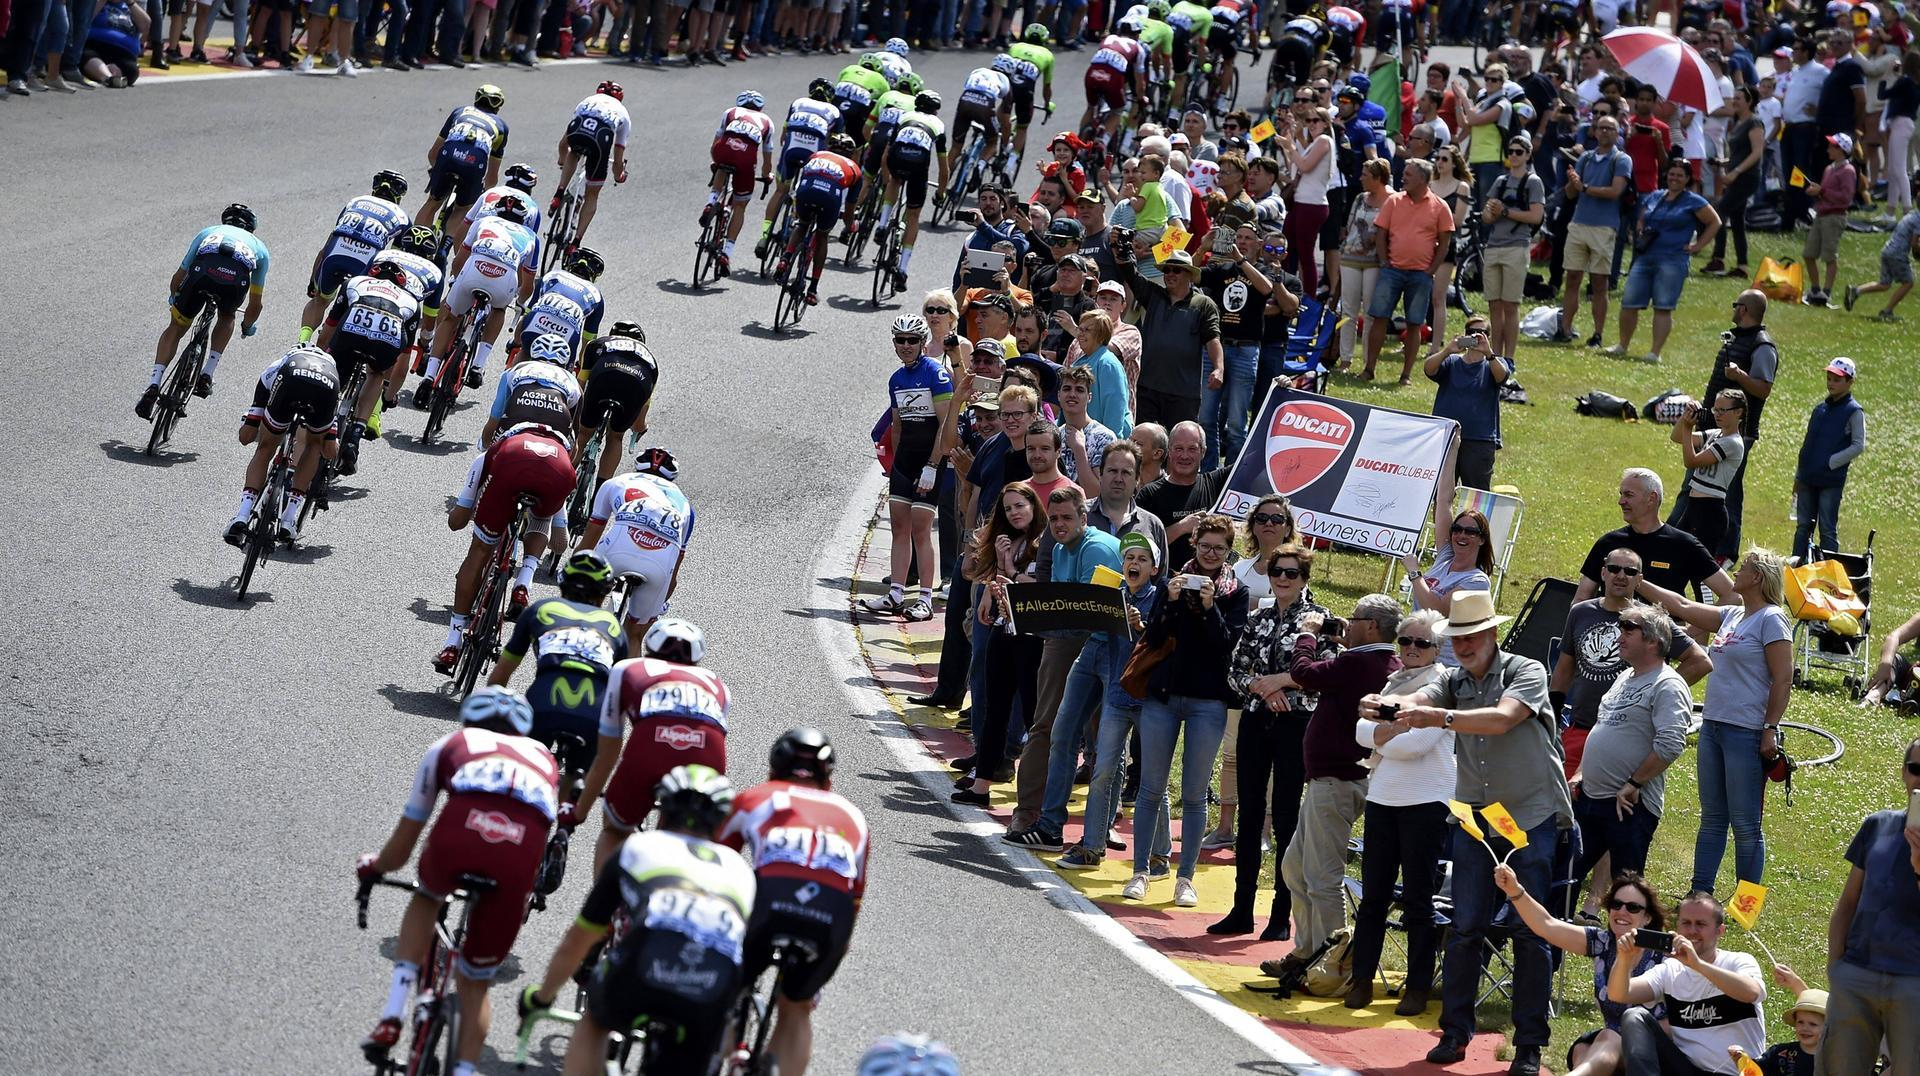 19. Etappe: Embrun - Salon-de-Provence: Tour de France im Live-Ticker. LONGWY LUXEMBOURG JULY 3 Illustration picture of the peloton passing on the famous race circuit (Quelle: Photo News Panoramic)